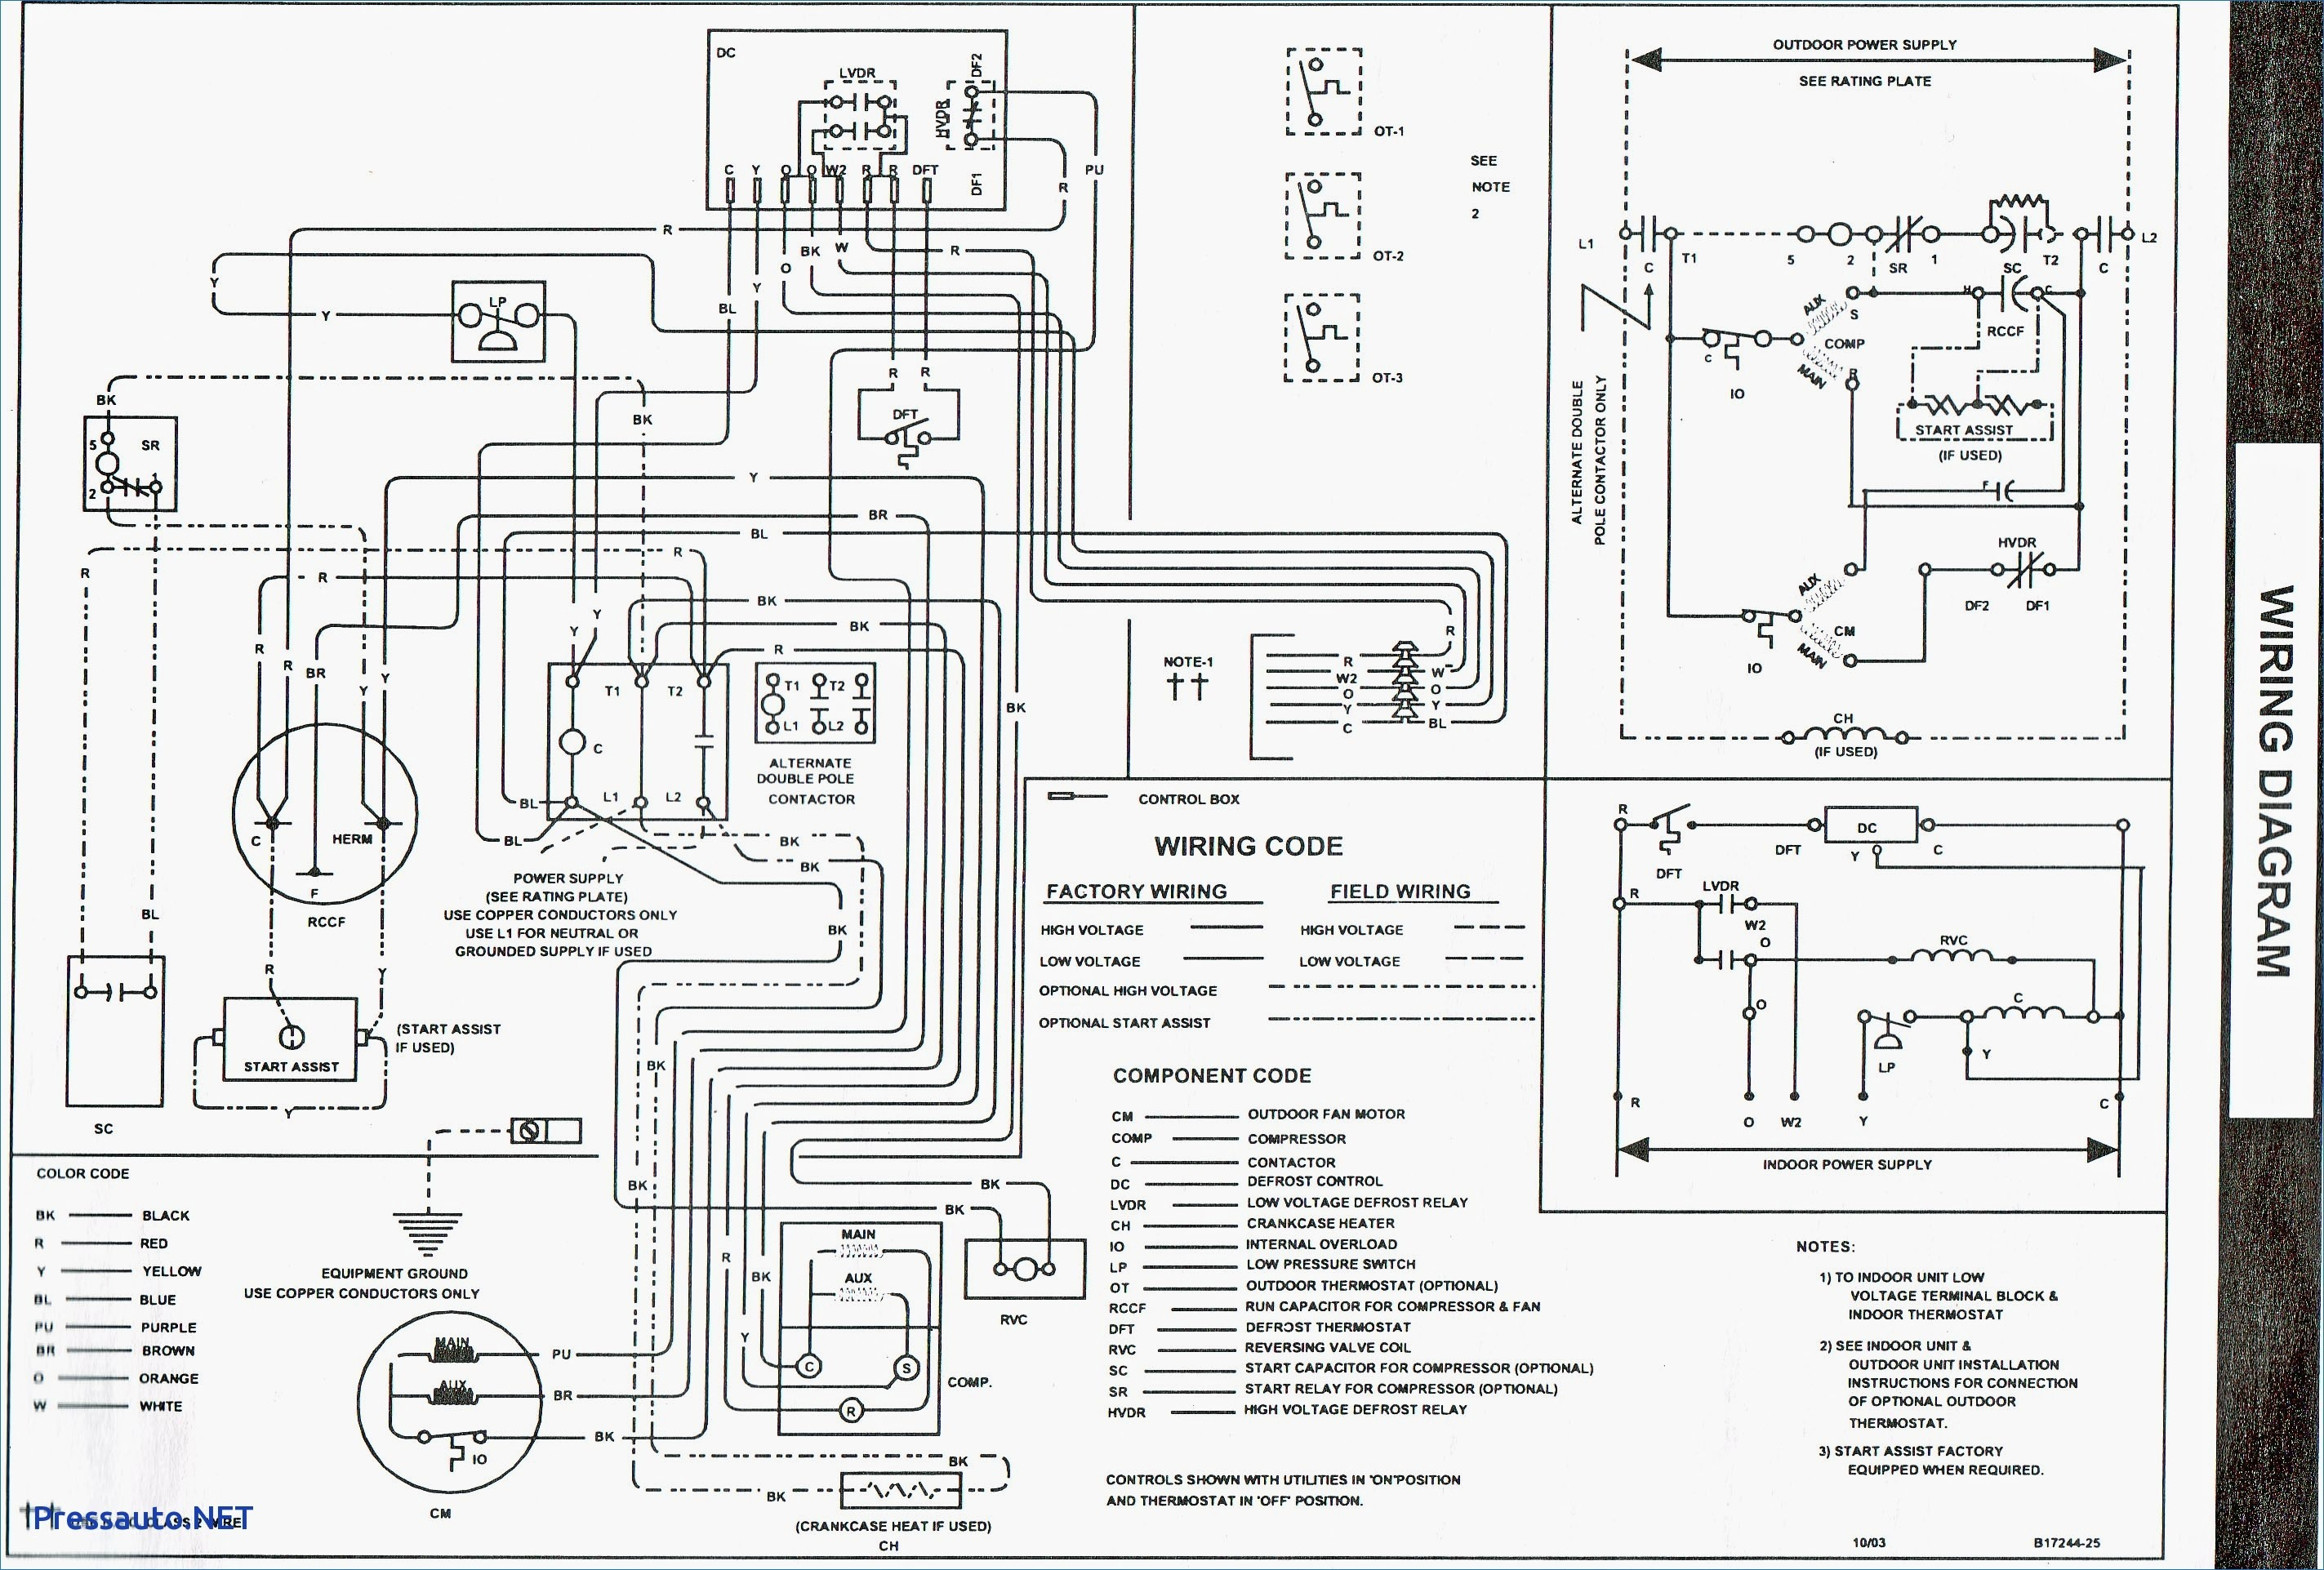 york air handler control board wiring diagram york control board wiring diagram get goodman furnace control board wiring diagram sample